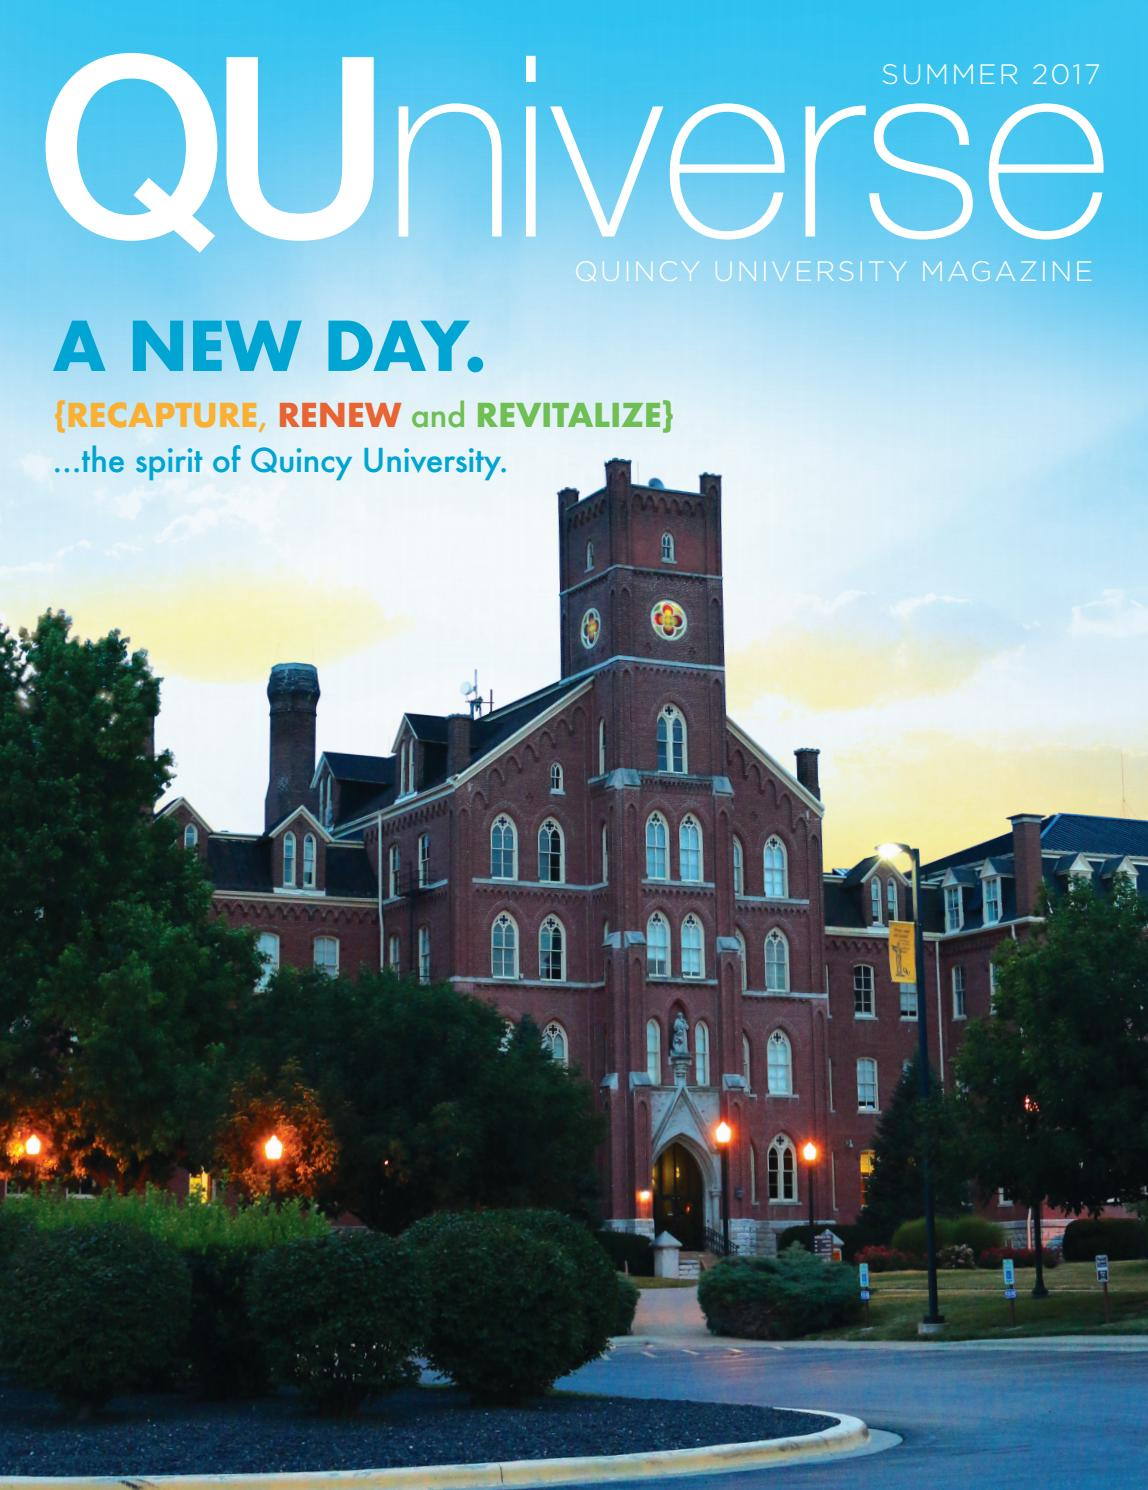 QUniverse Summer 2017 by quincy university - issuu 458993668